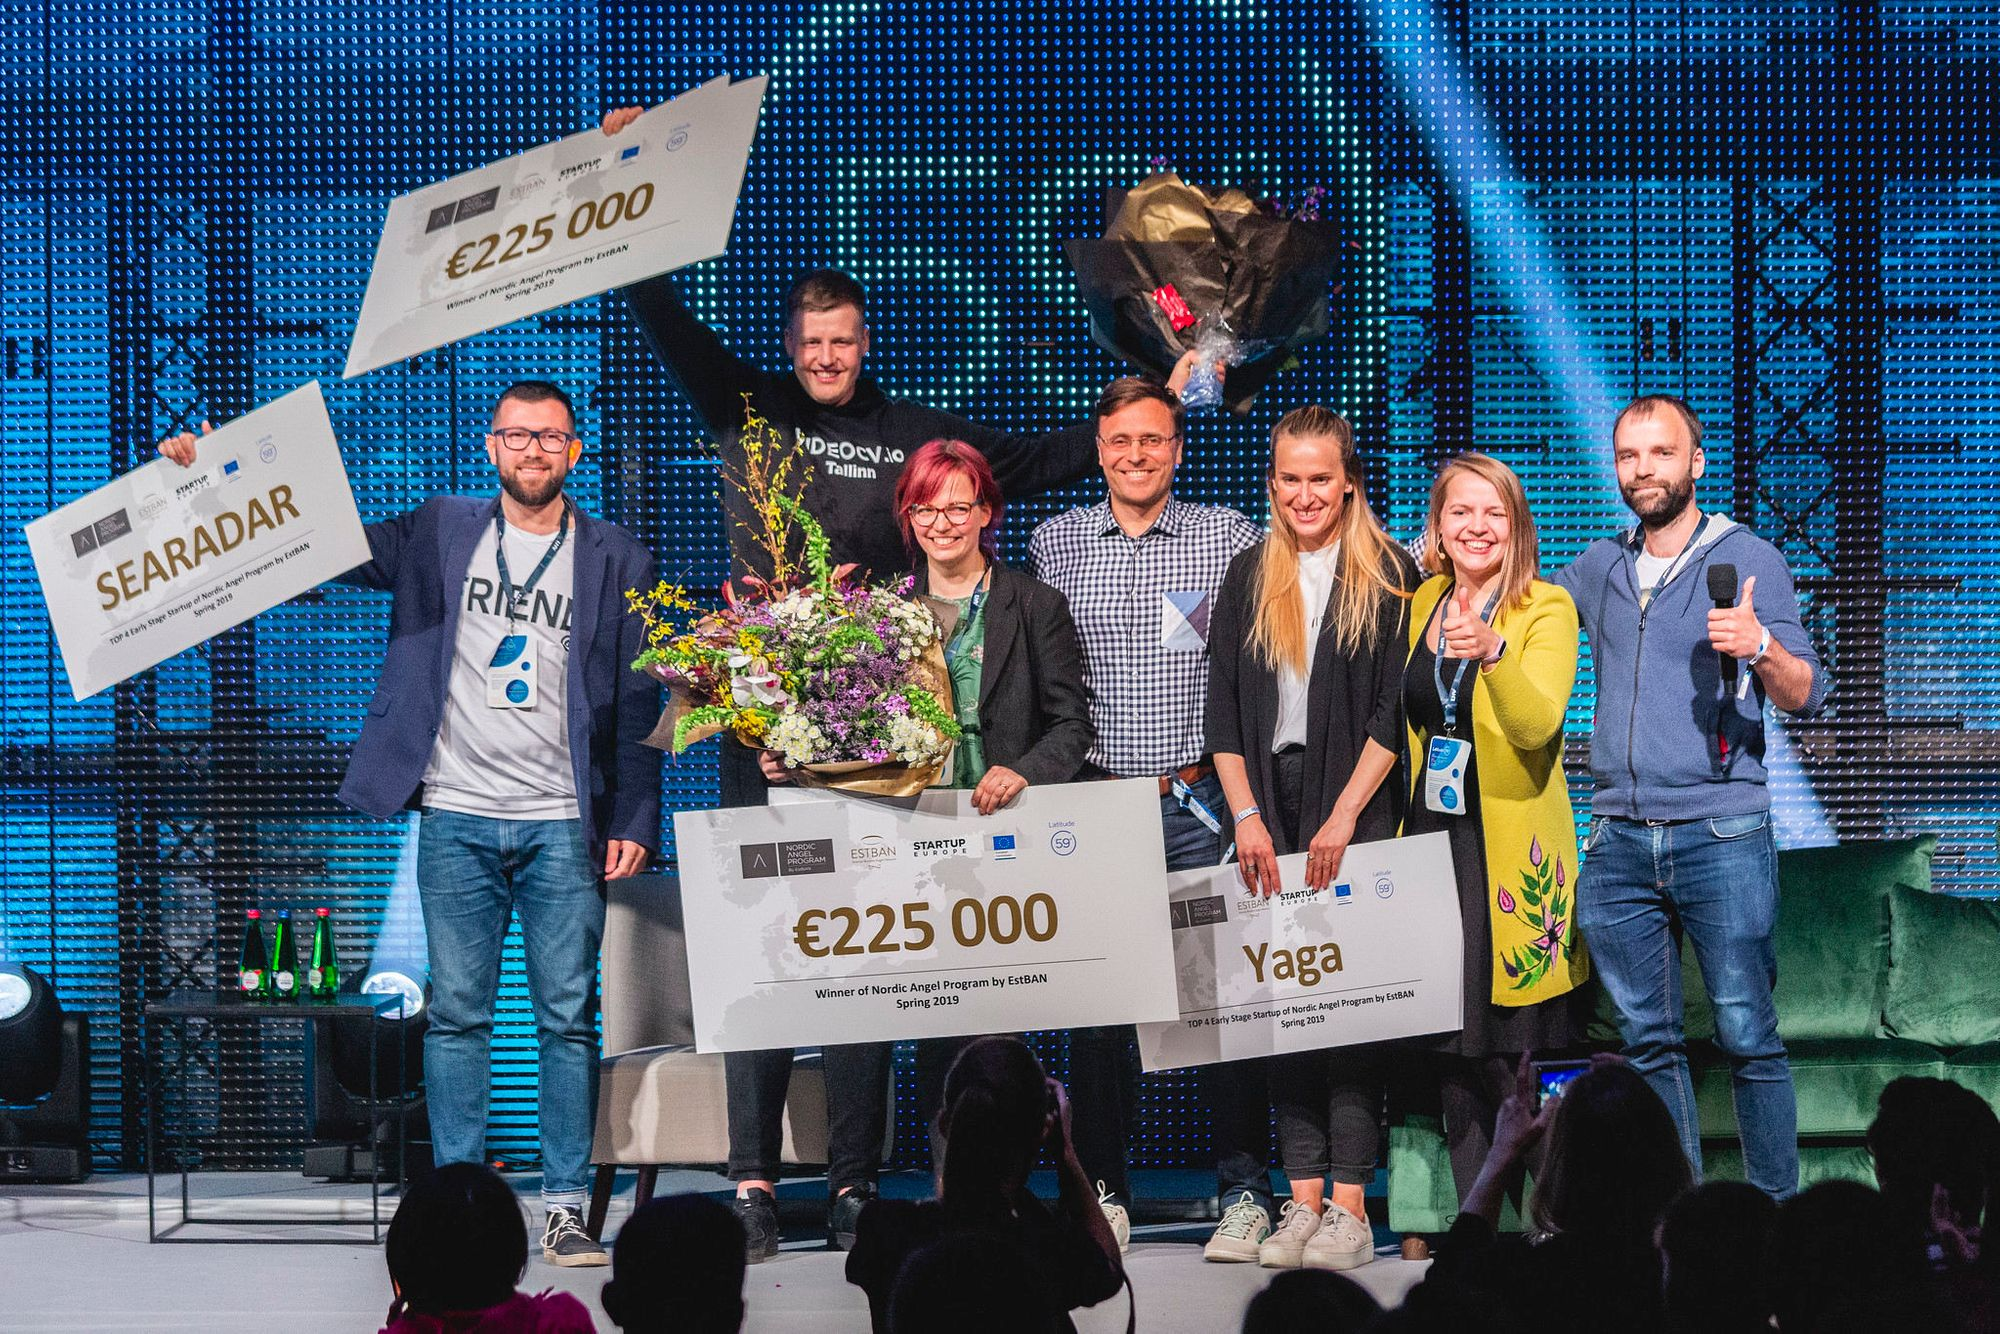 Interview with the winner of the Nordic Angel Program by EstBAN at Latitude59: Johanna-Mai Riismaa of Zelos app